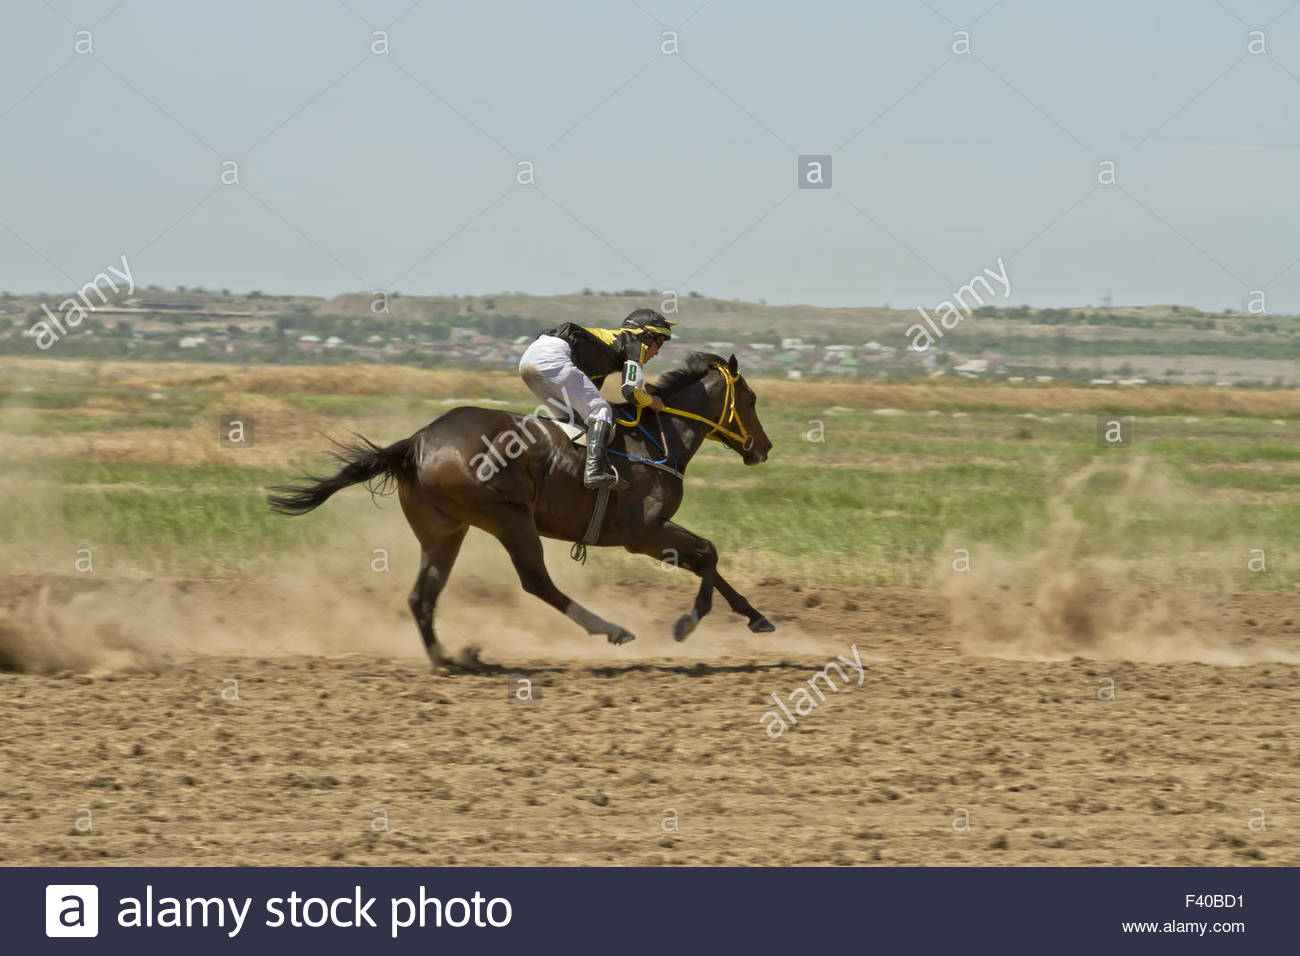 Jockey riding a horse during horse racese - Stock Image